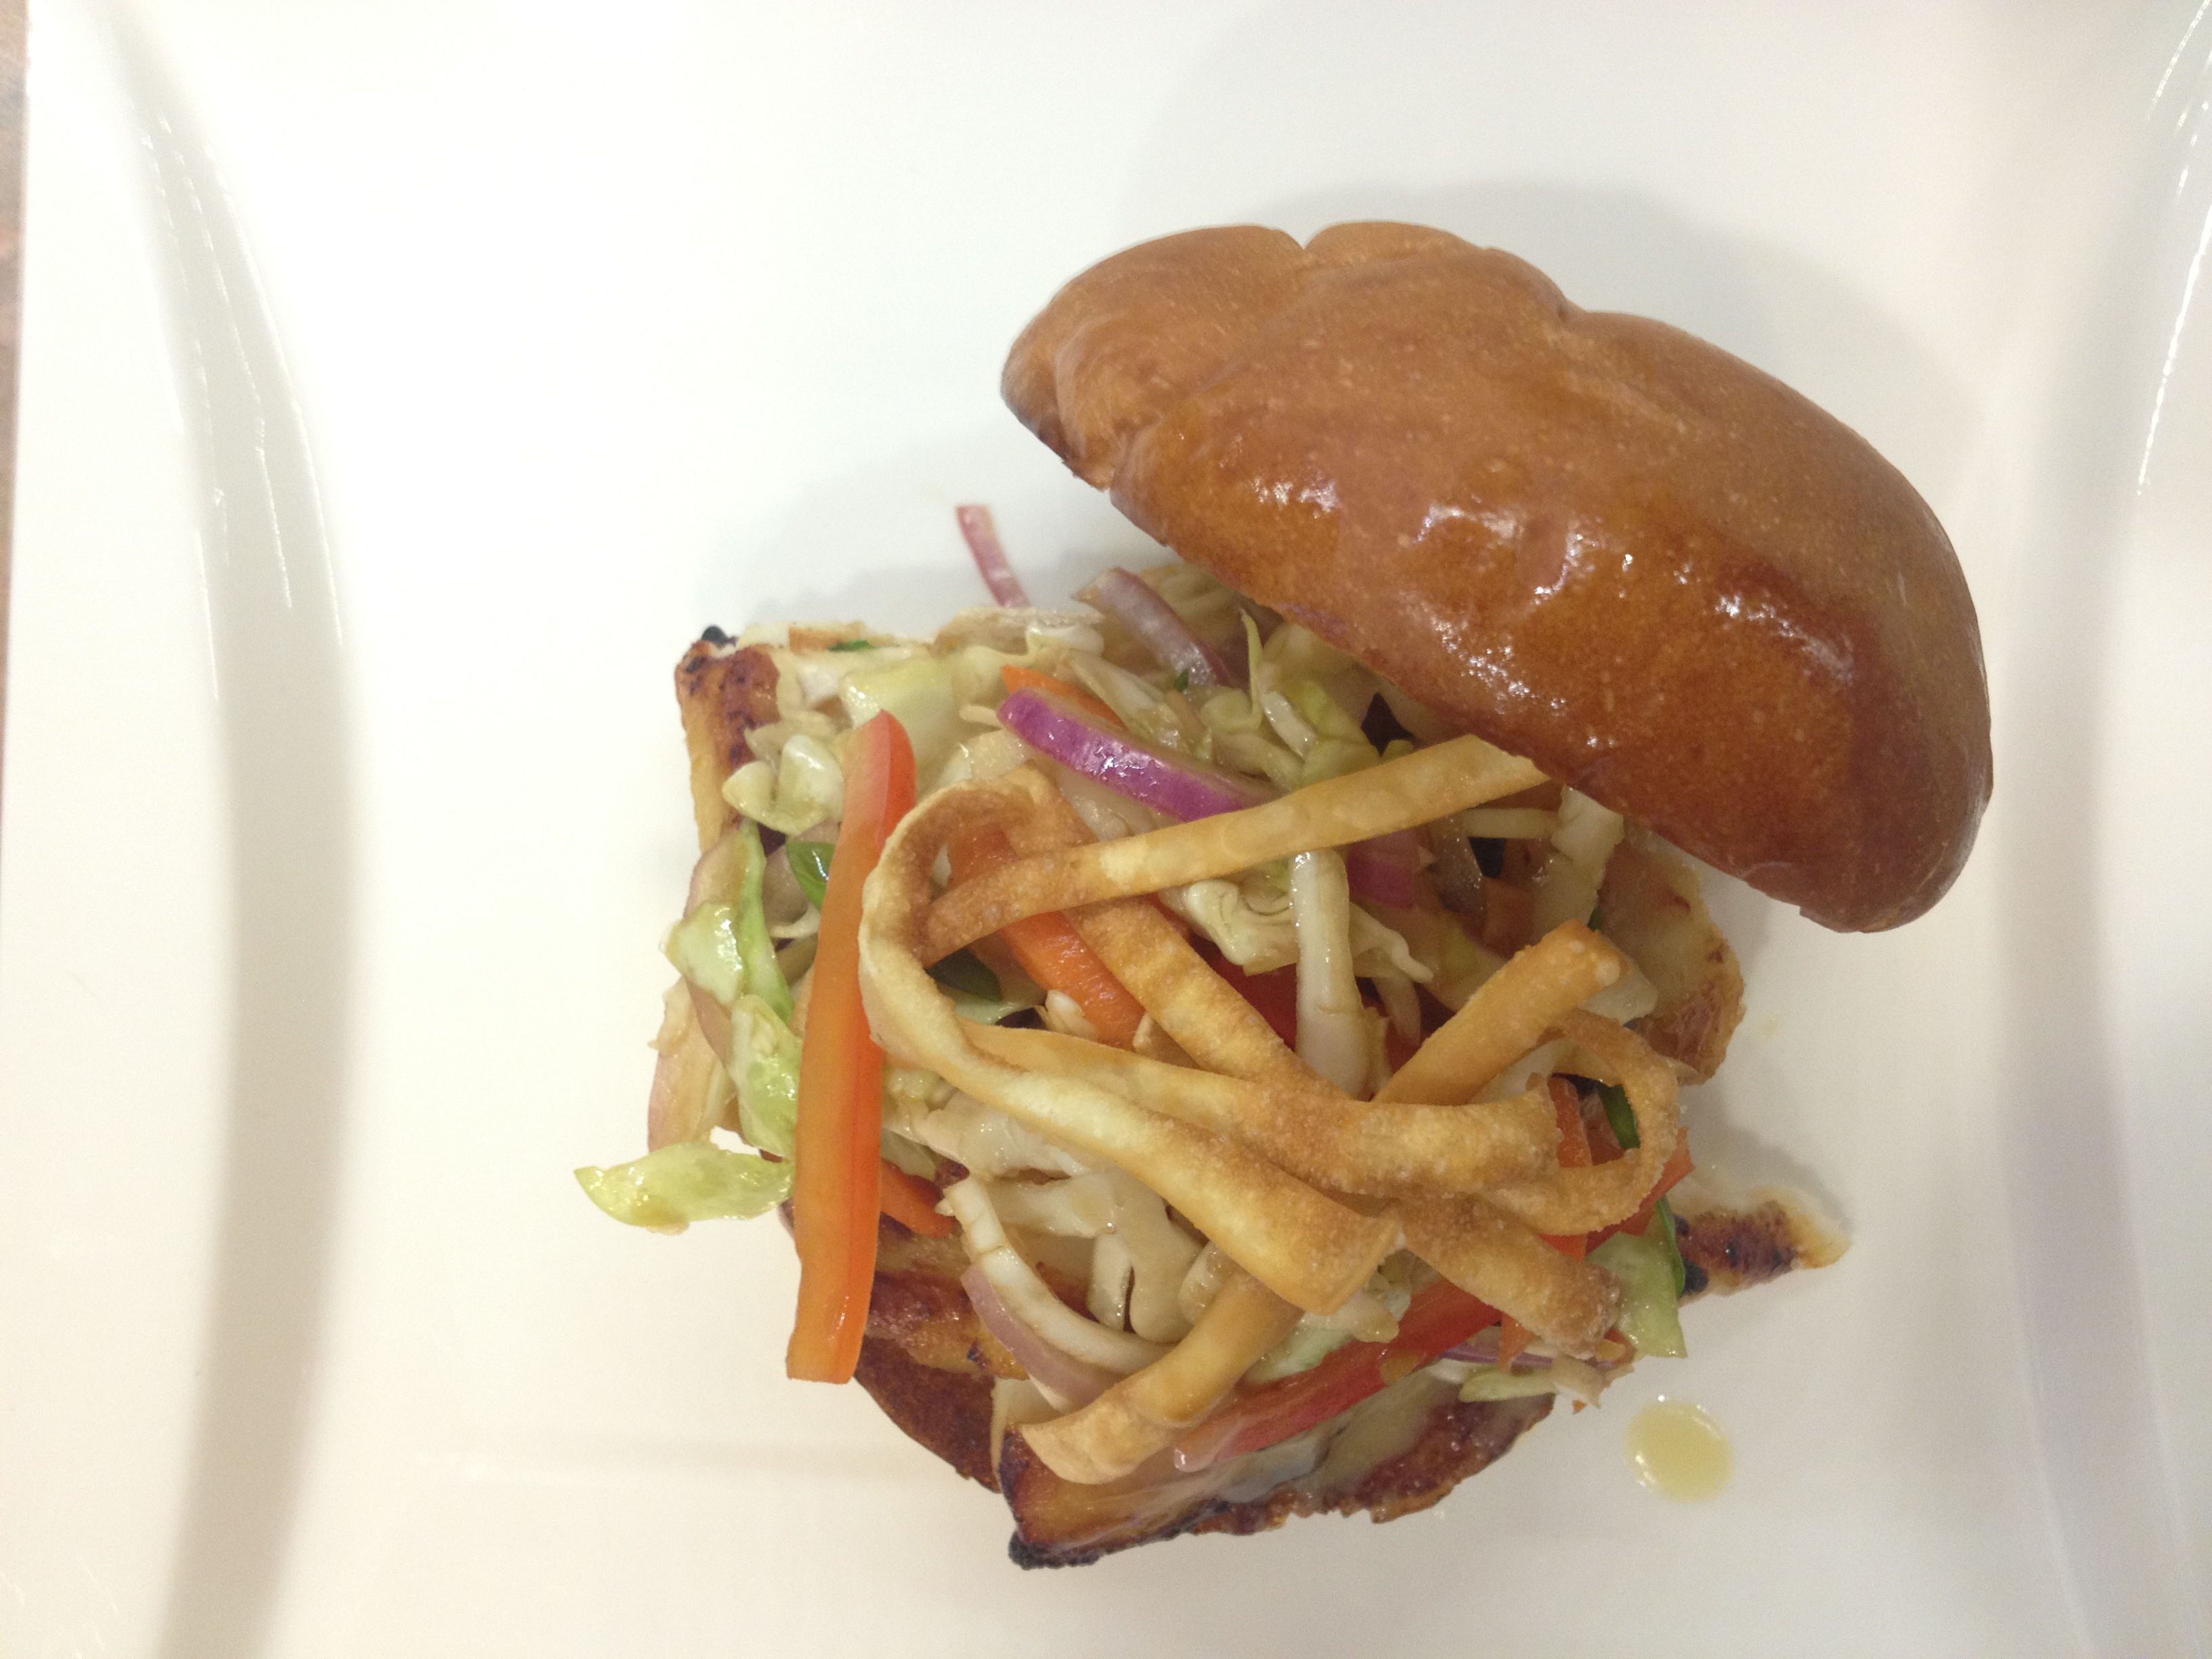 Grilled Miso-Glazed Fish Sandwich with Asian Slaw &amp; Miso Dressing